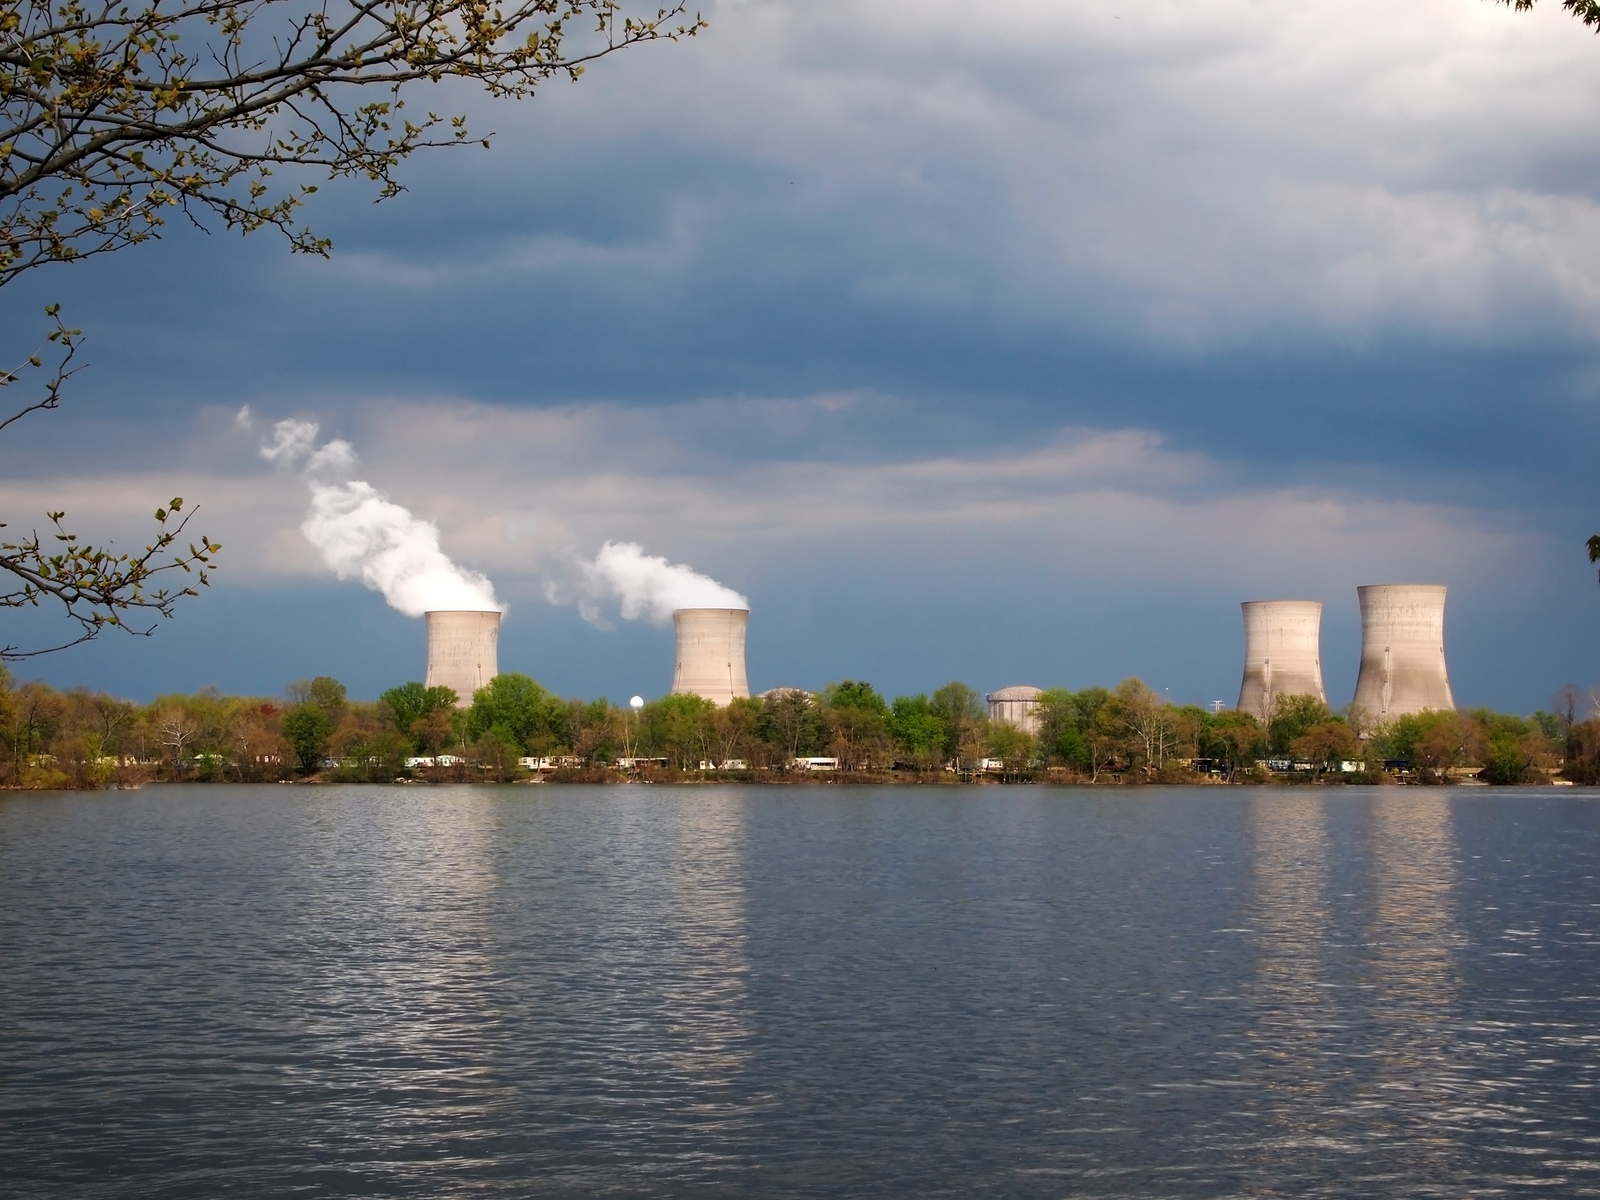 A discussion on the lingering effects of three mile island